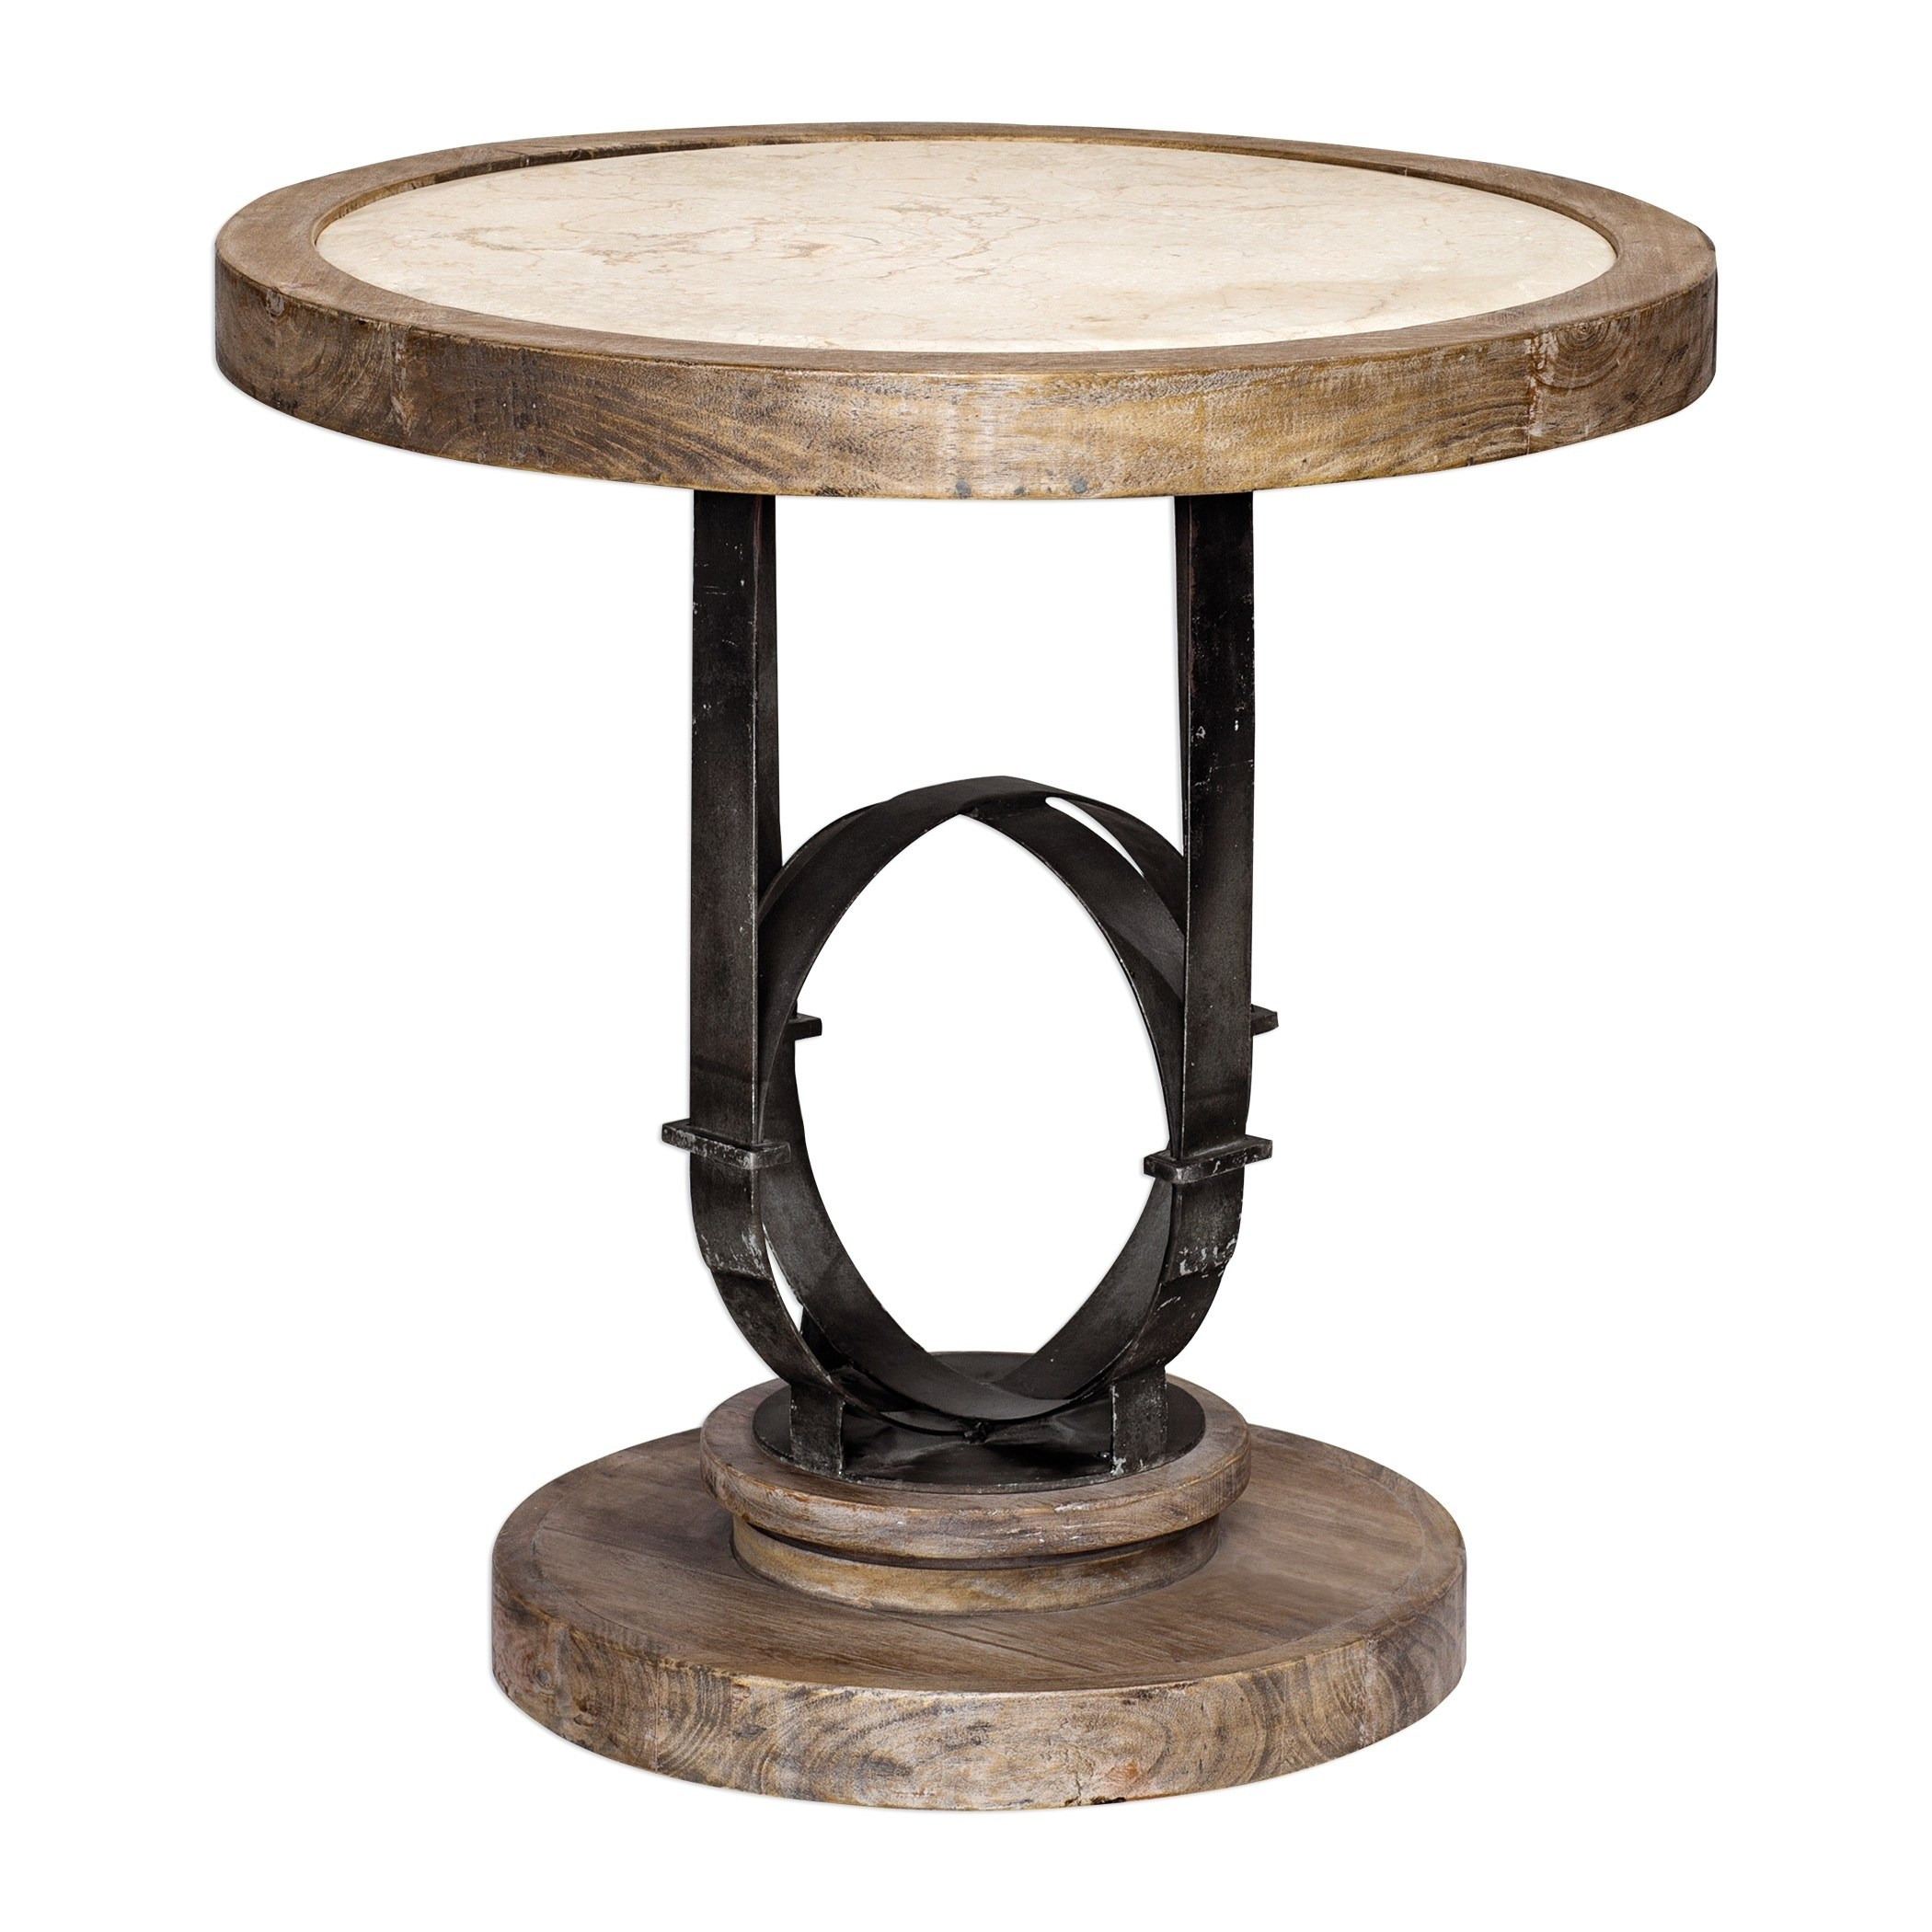 uttermost sydney light oak accent table tables free shipping today marble console black coffee squares linens target gold nightstand outdoor patio cooler shabby chic dining winter